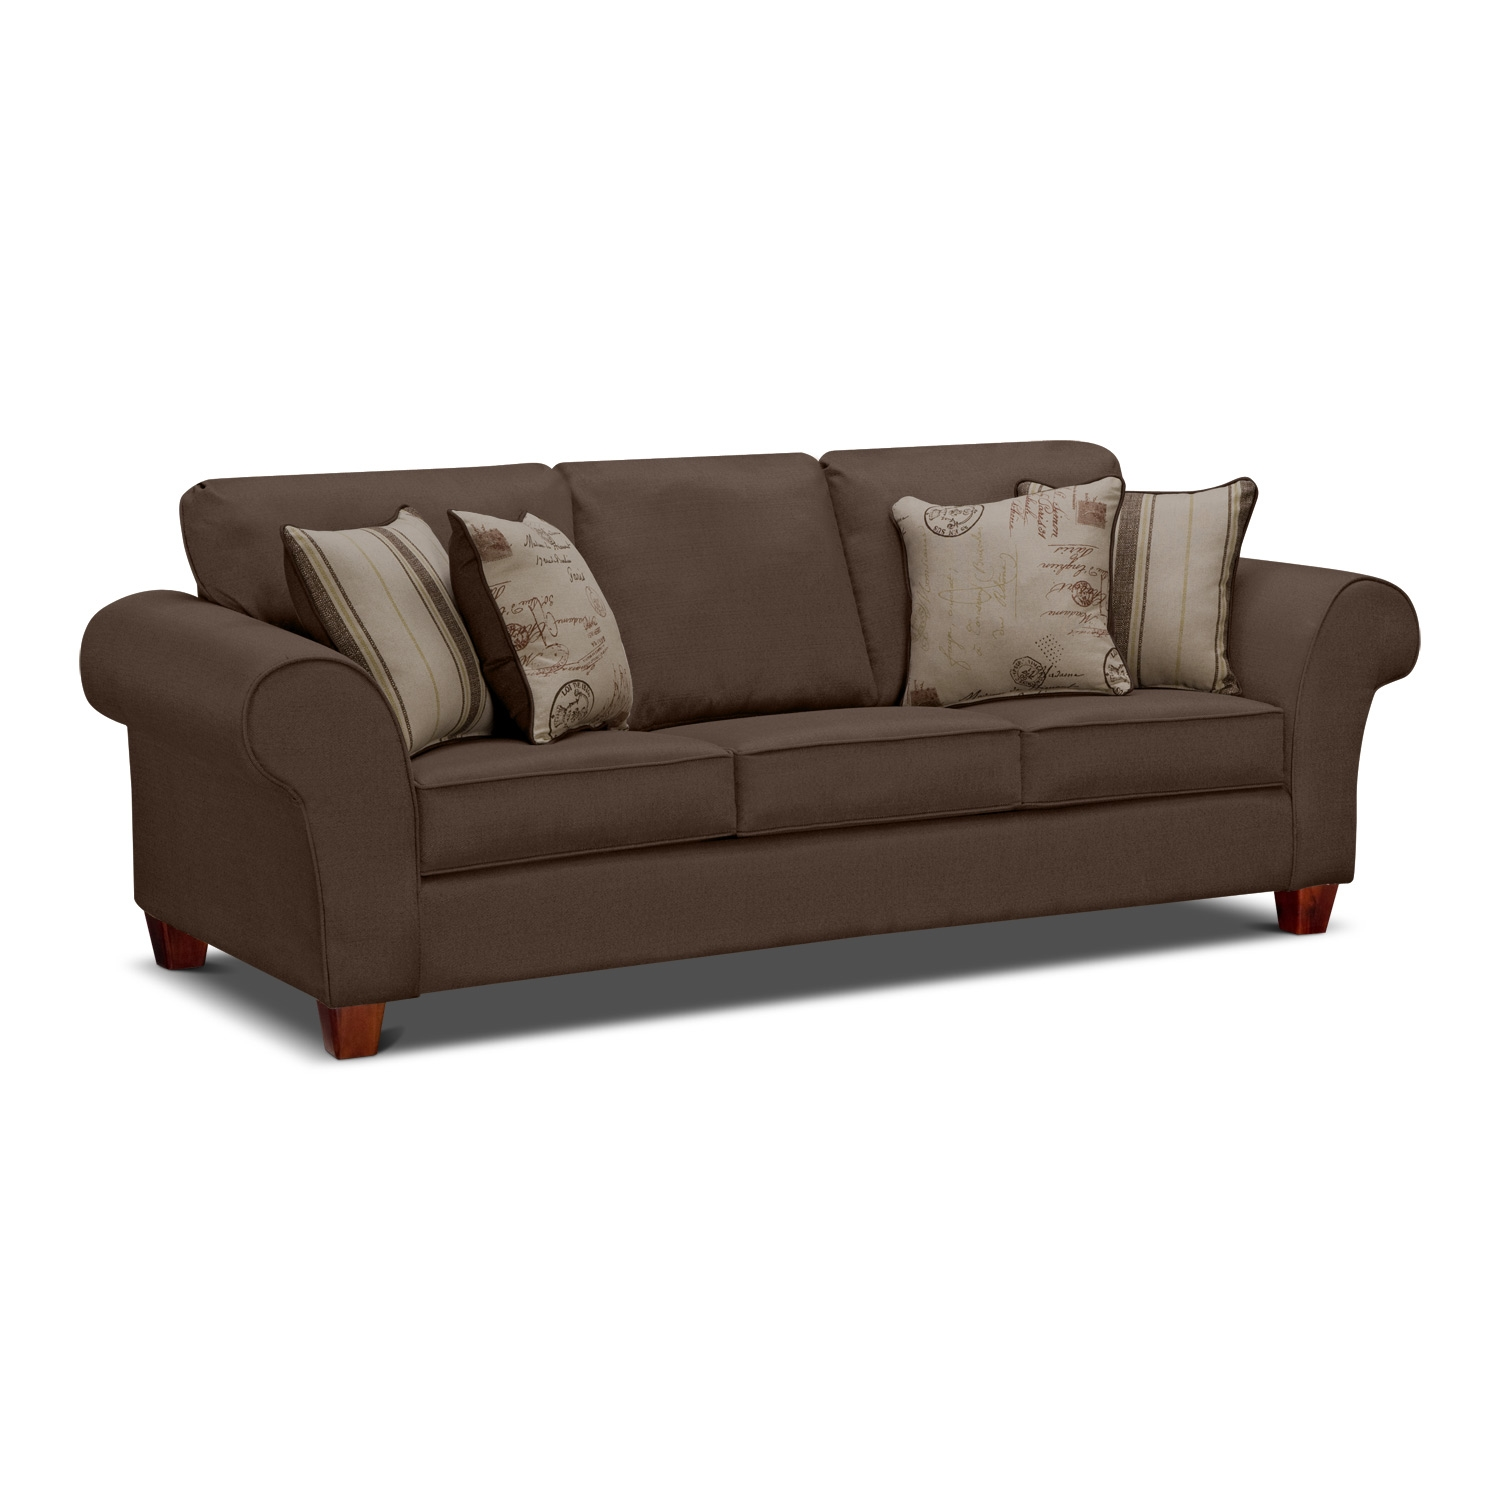 Sale on sofas sofas on sale ikea sofa ideas interior for Sofa bed queen ikea